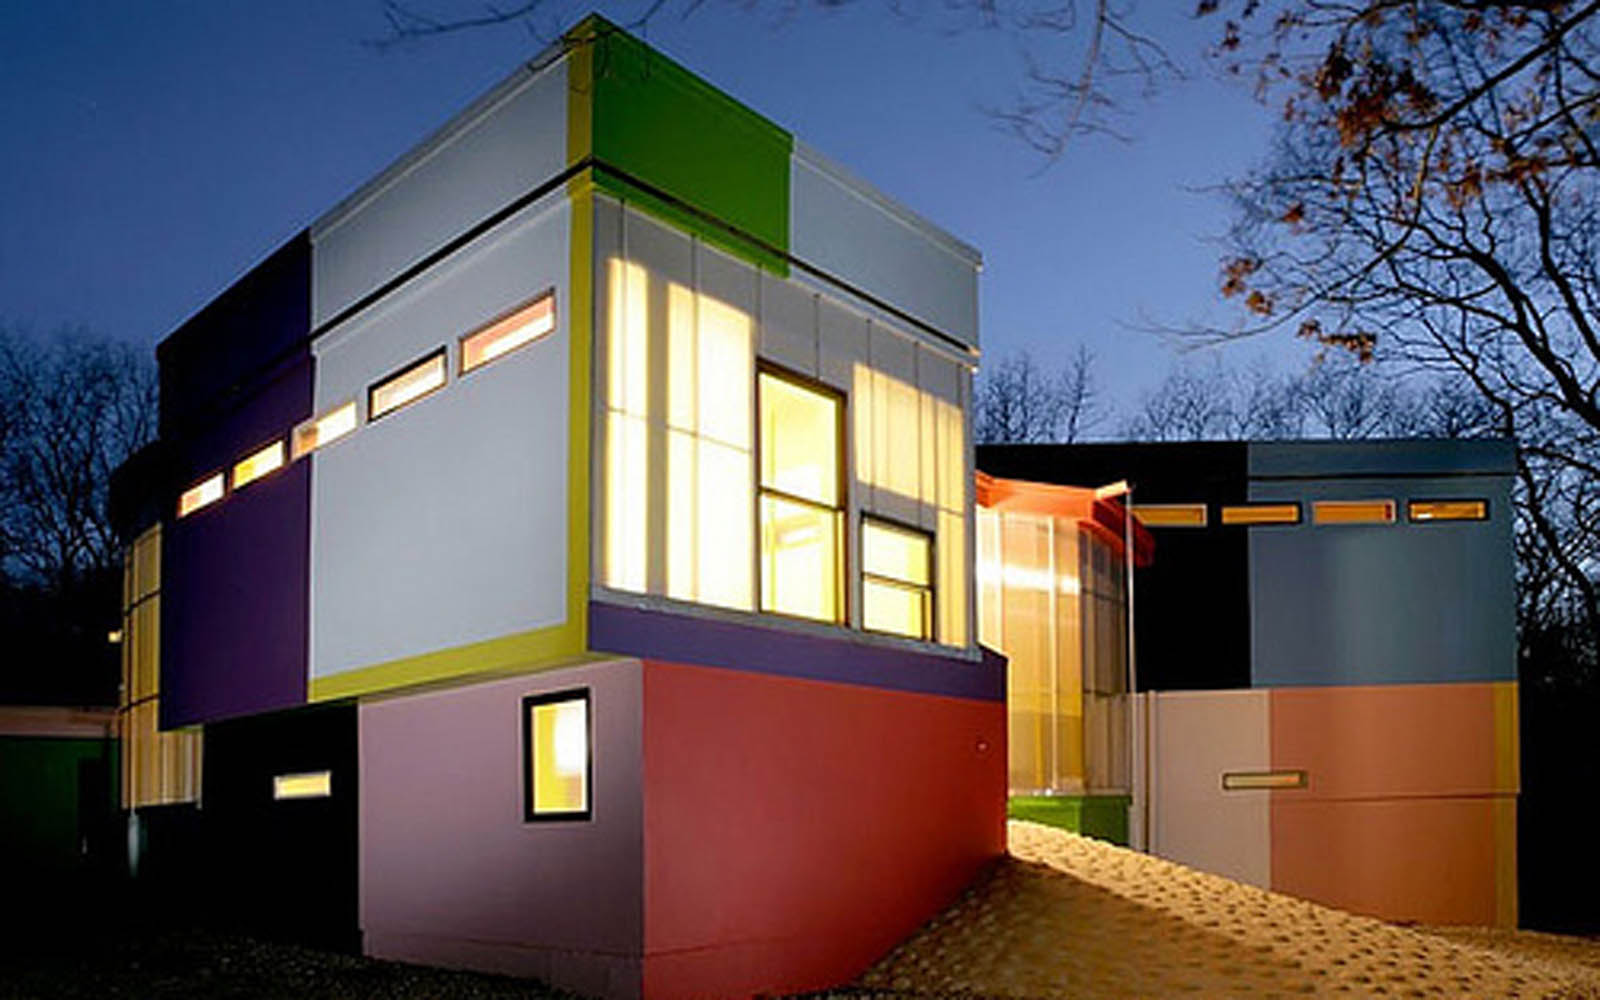 Colorful Modern House Pictures 1600x1000